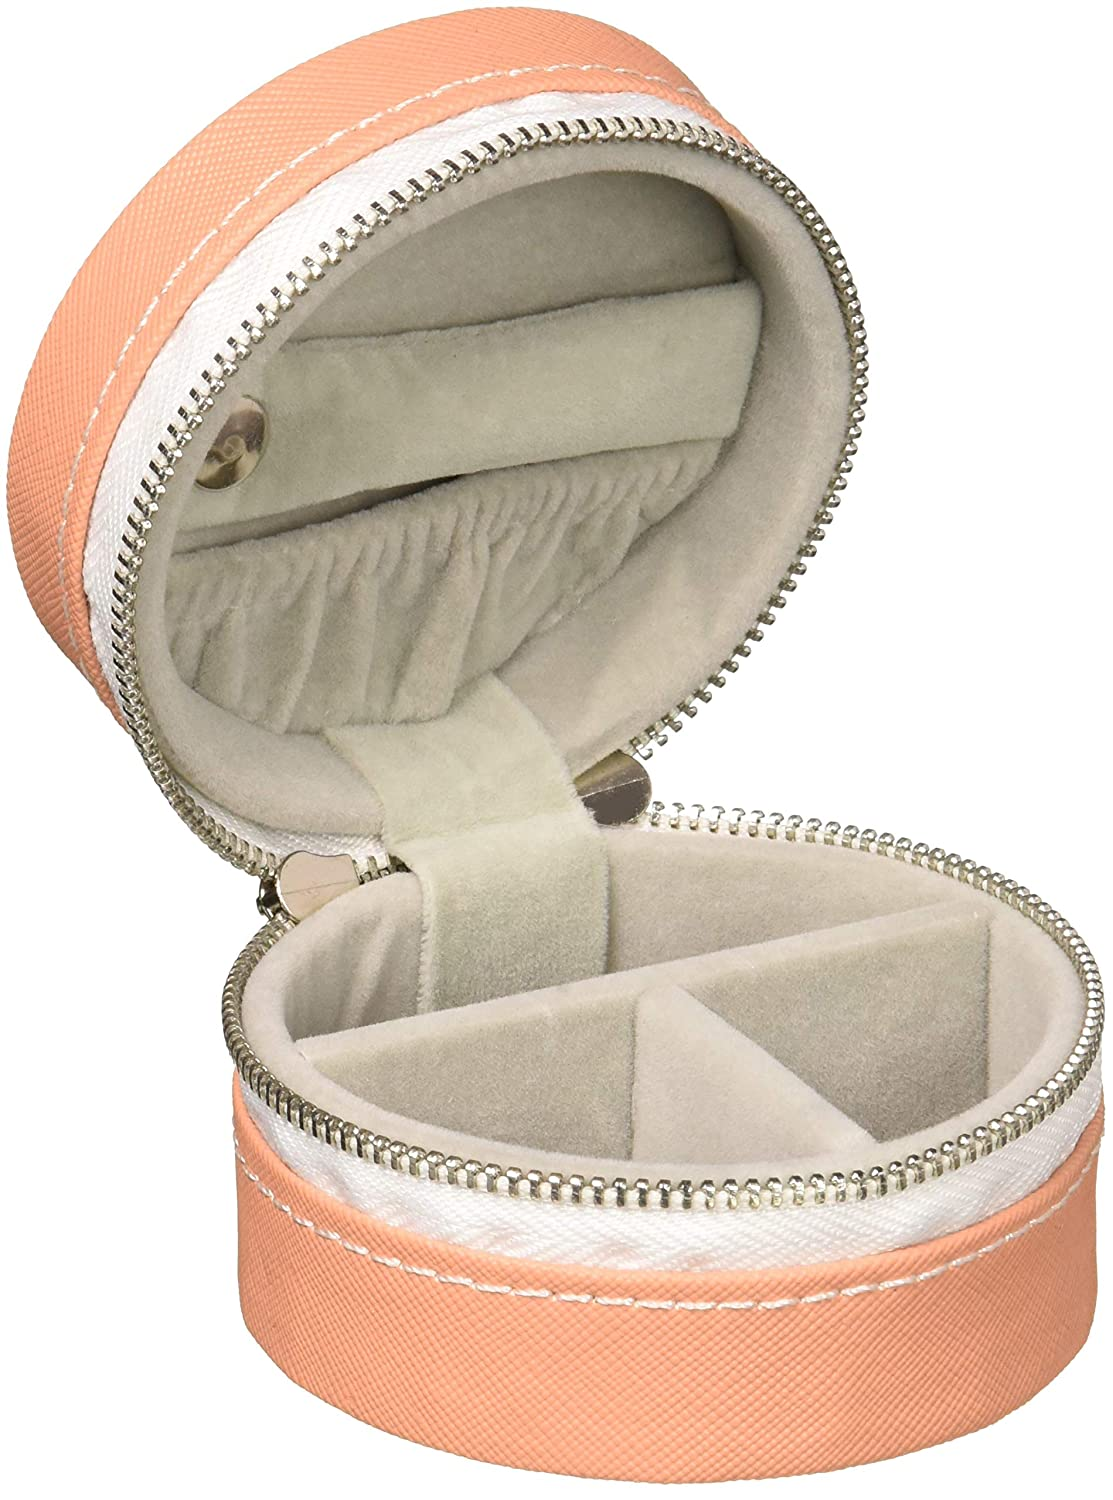 Pavilion Peach Zippered Jewelry Case 3.5 Inch Best Friends Forever